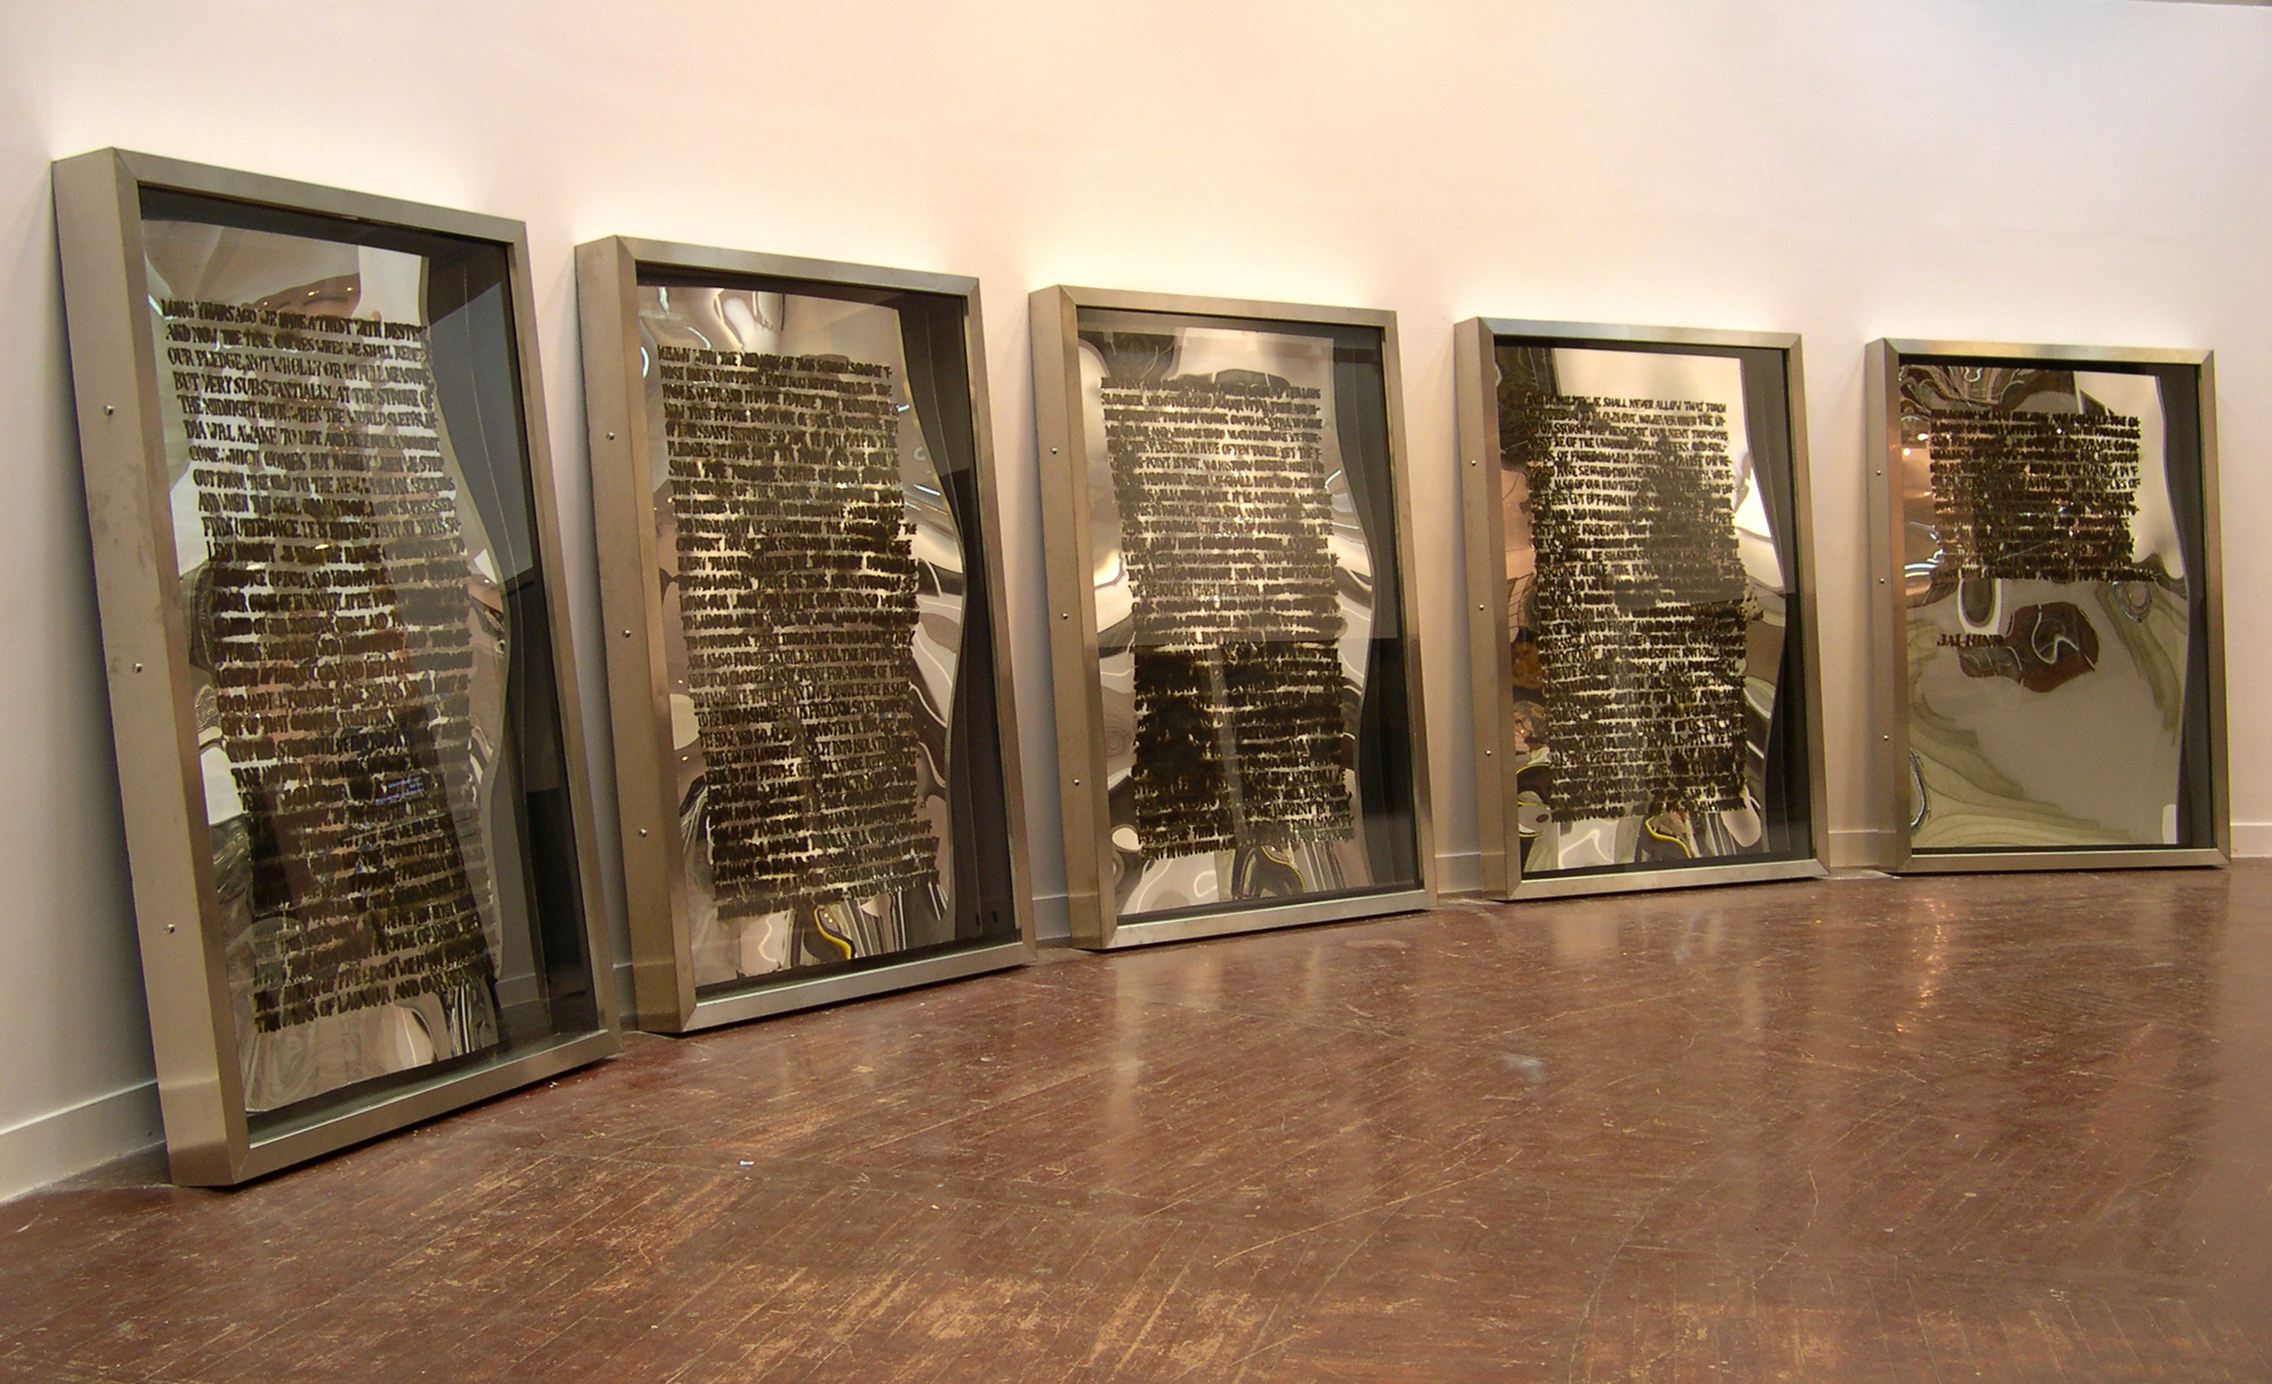 Artist: Jitish Kallat Title: Public Notice Date: 2003 Medium: Burnt adhesive on acrylic mirror, wood and stainless steel Size: 5 parts, 78 x 54 x 6 in. each (198.1 x 137.1 x 15.2 cm each) Credit: Shumita and Arani Bose Collection, NewYork